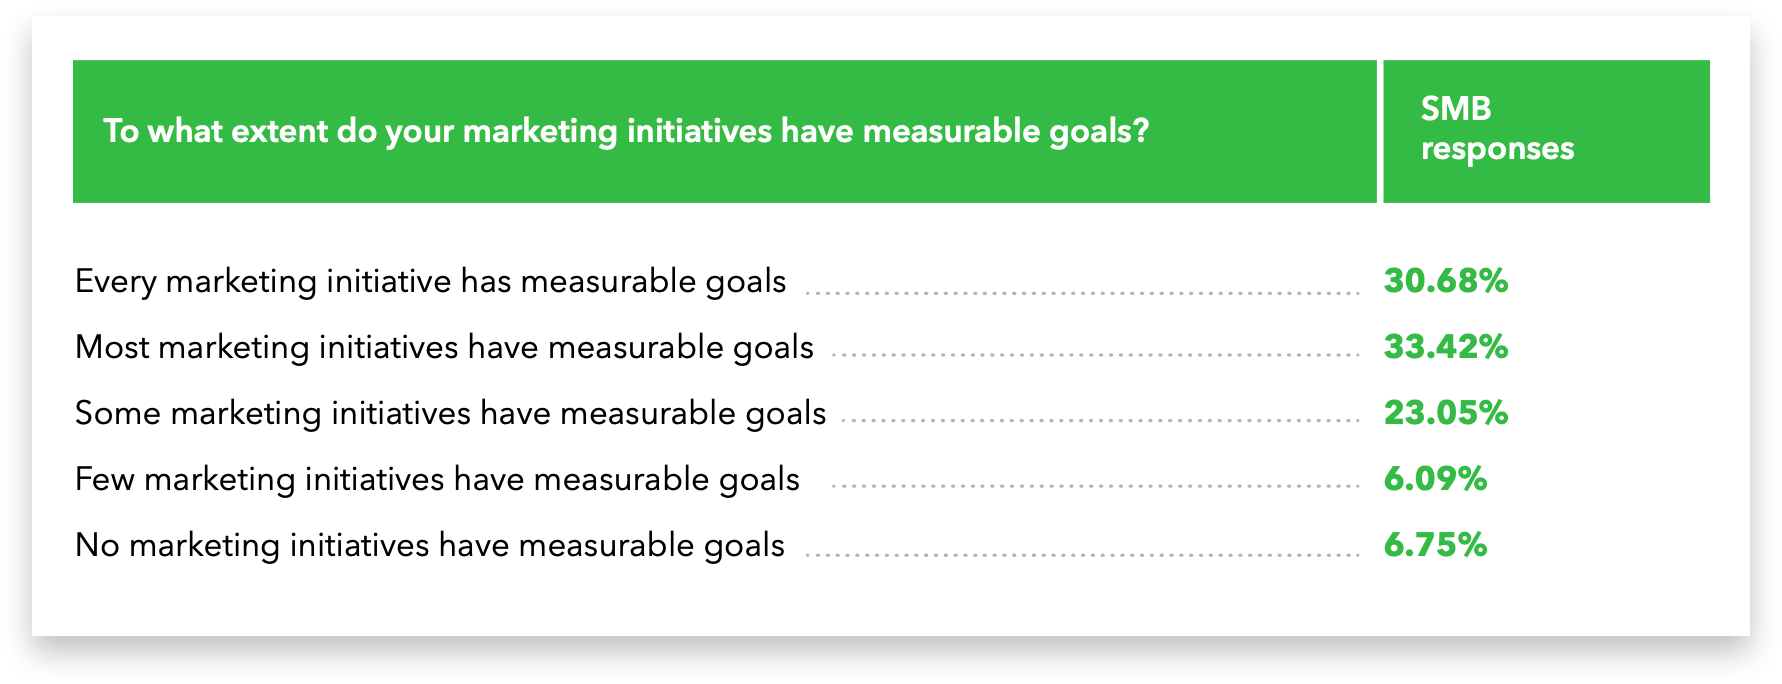 Marketing goals that are measurable